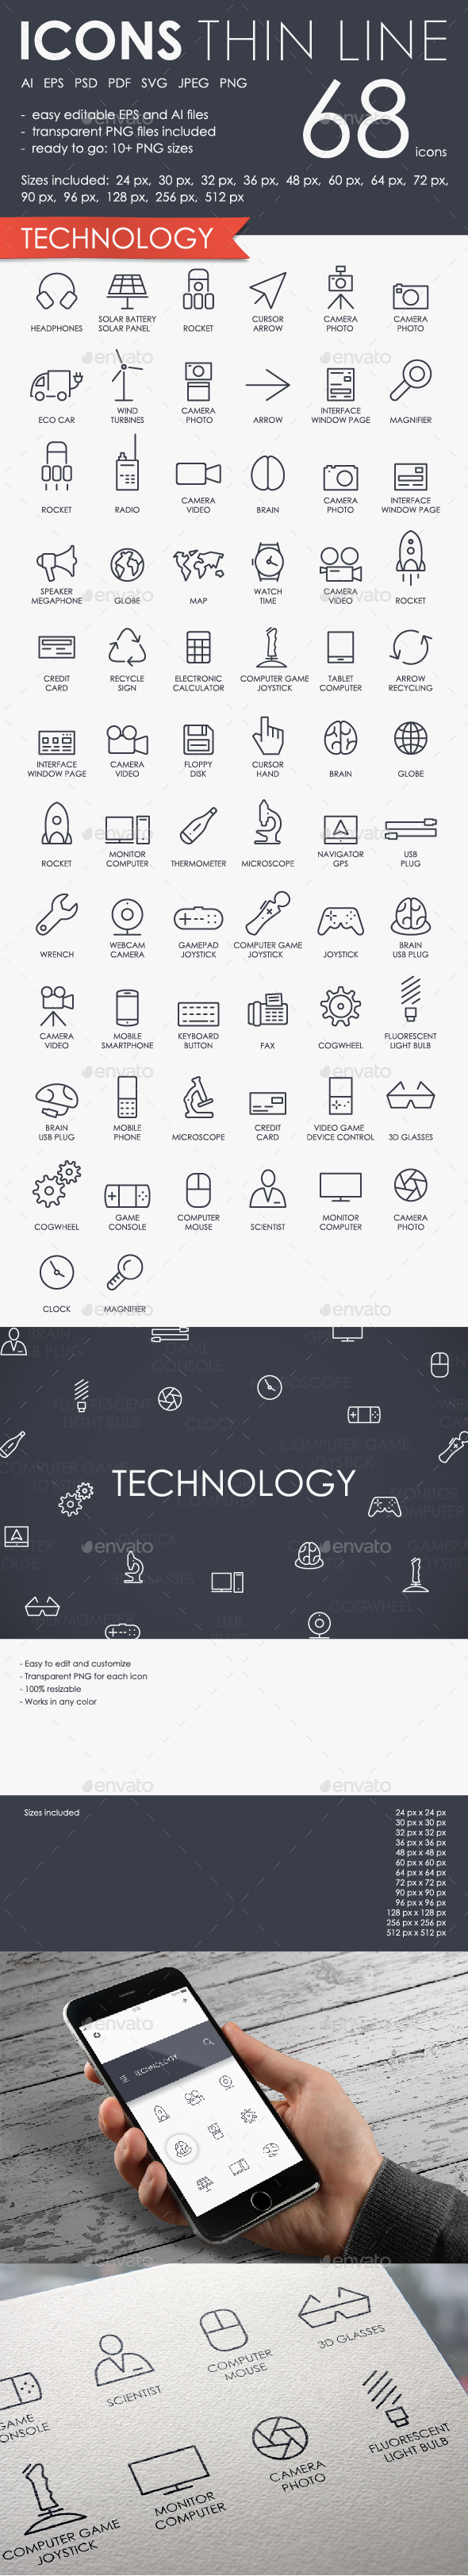 Technology thinline icons - Technology Icons